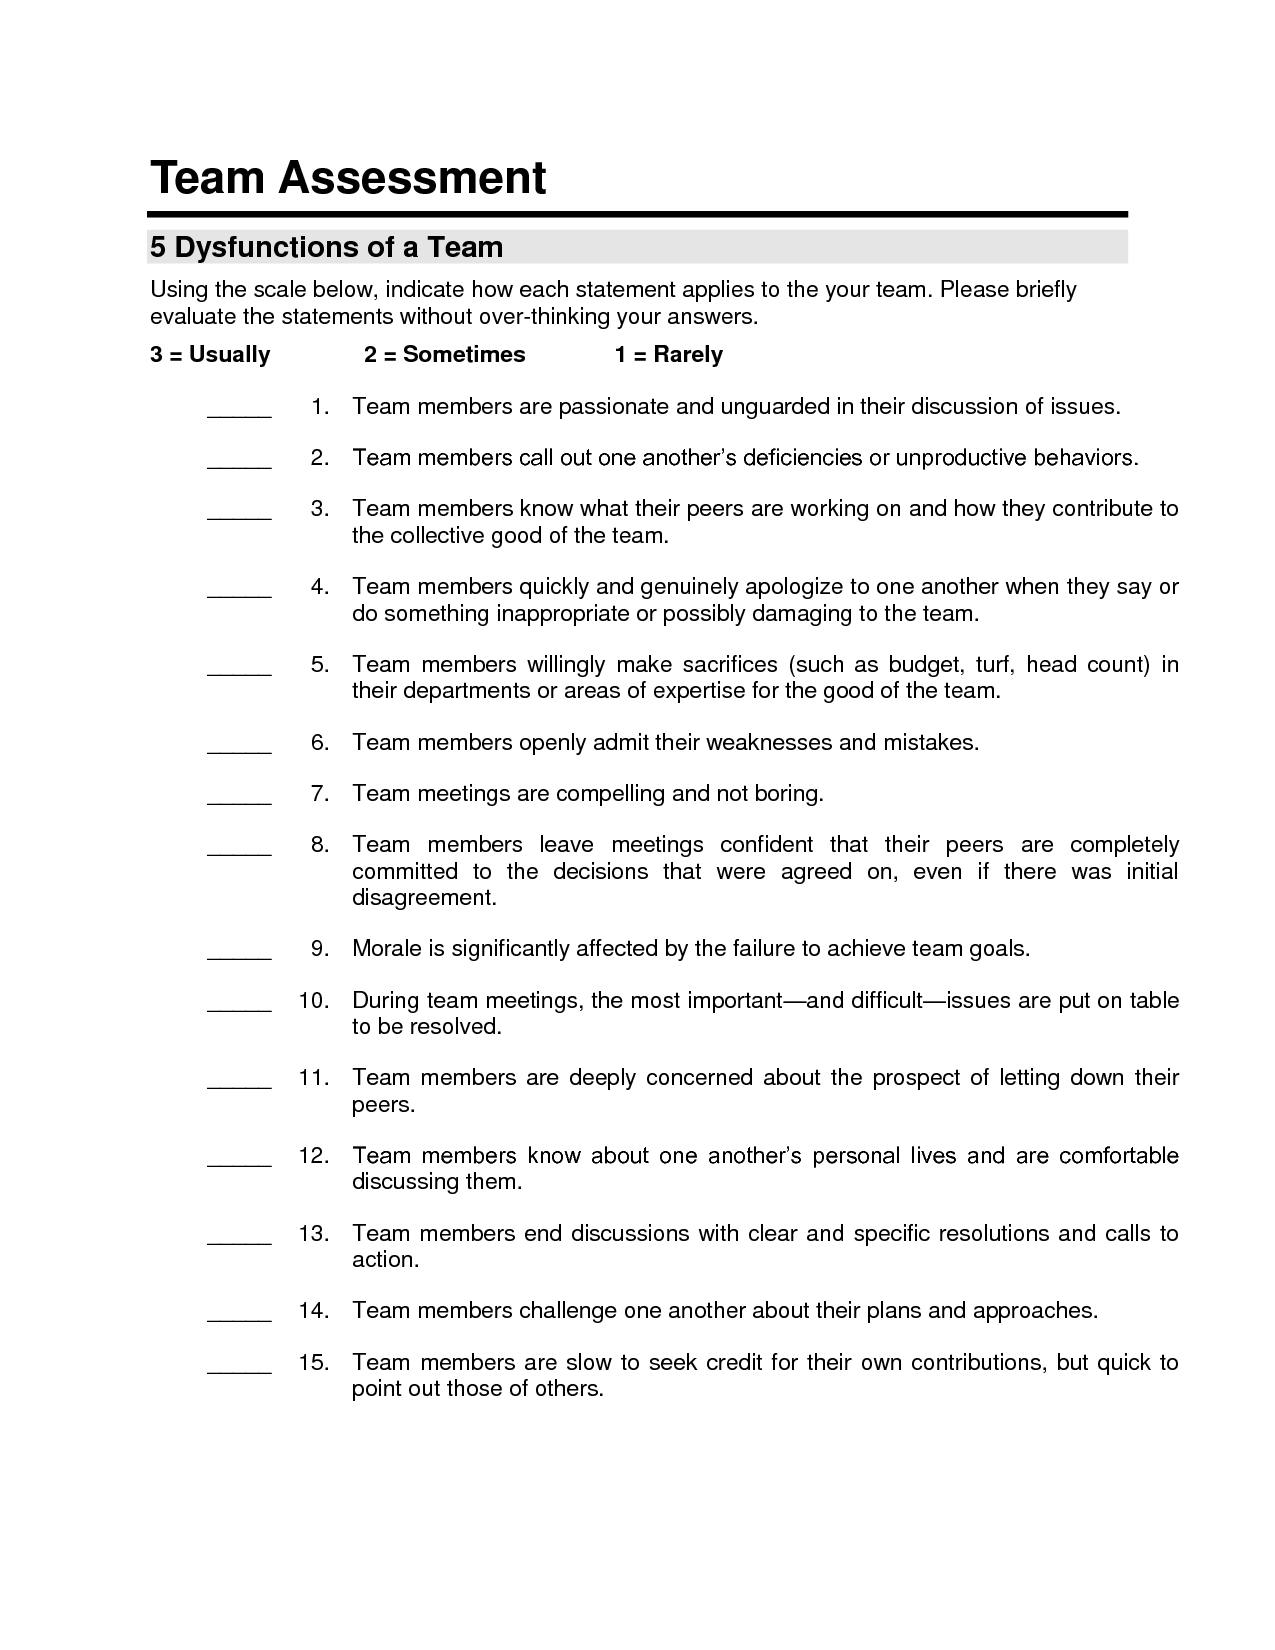 5 Dysfunctions Of A Team Exercises Pdf